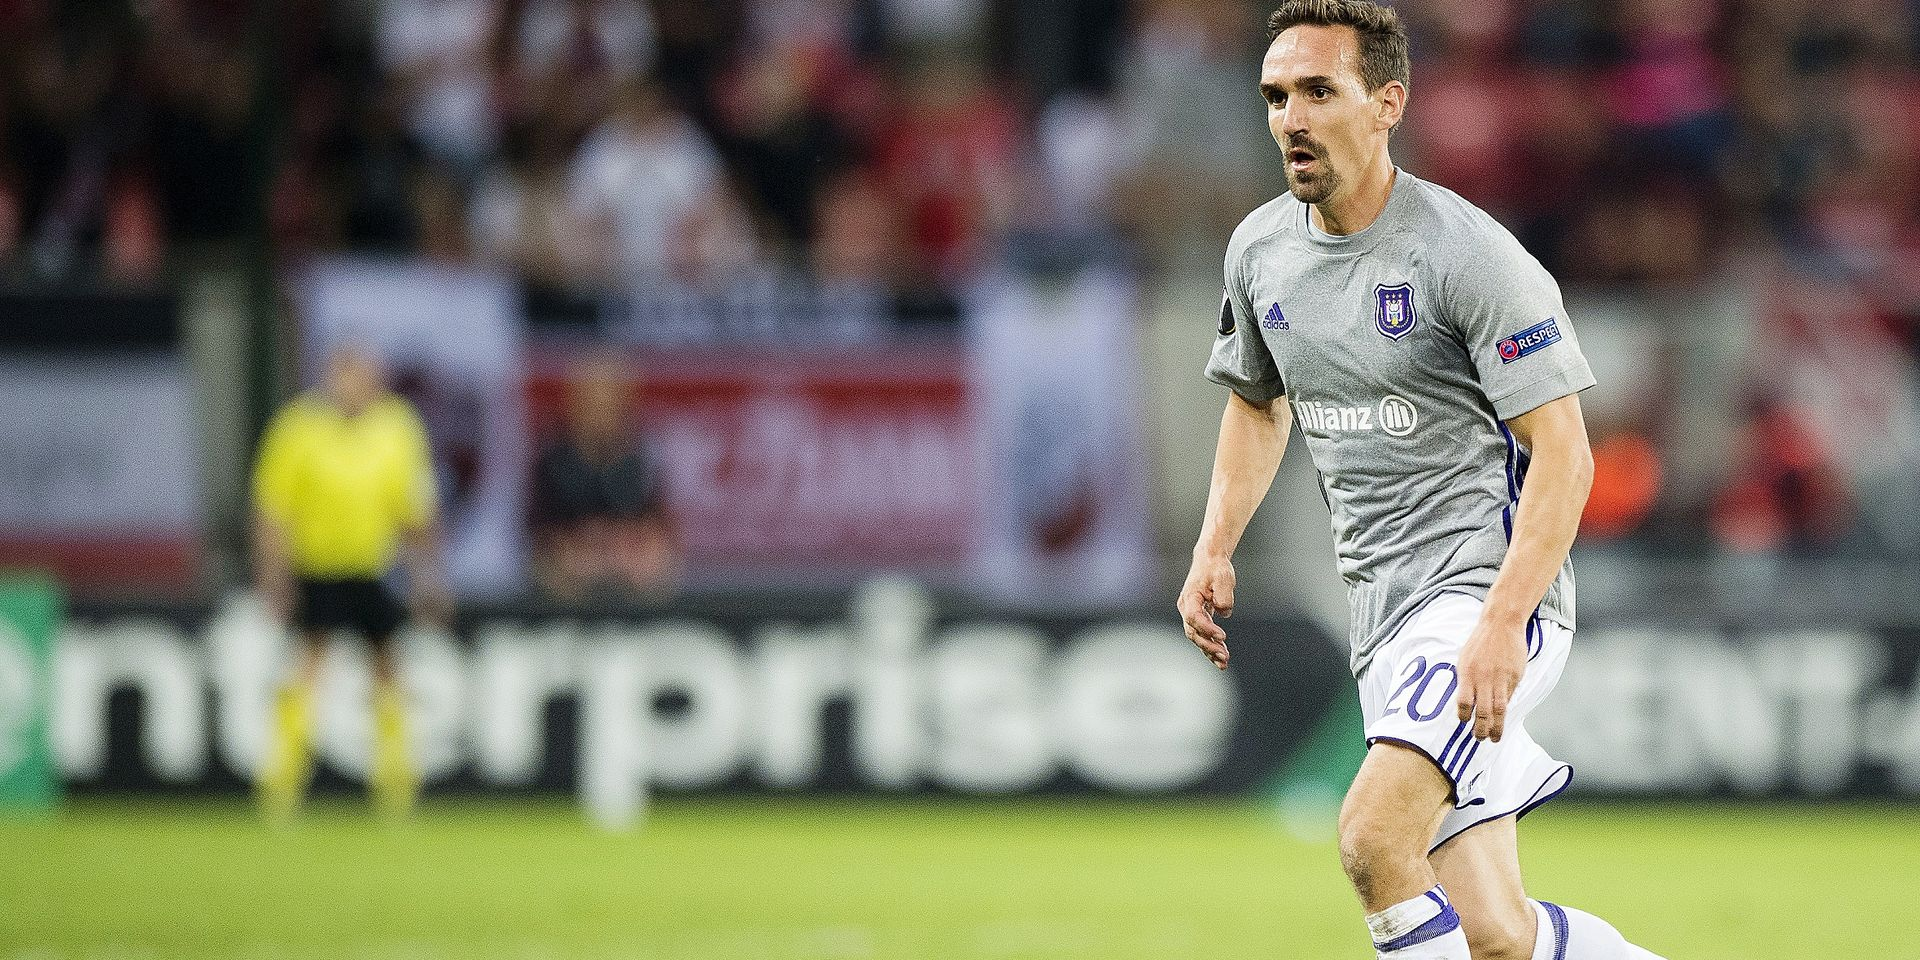 Anderlecht's Sven Kums pictured in action during a match between Belgian soccer team RSC Anderlecht and Slovakian club Spartak Trnava, Thursday 20 September 2018 in Trnava, Slovakia, on day one of the UEFA Europa League group stage. BELGA PHOTO JASPER JACOBS